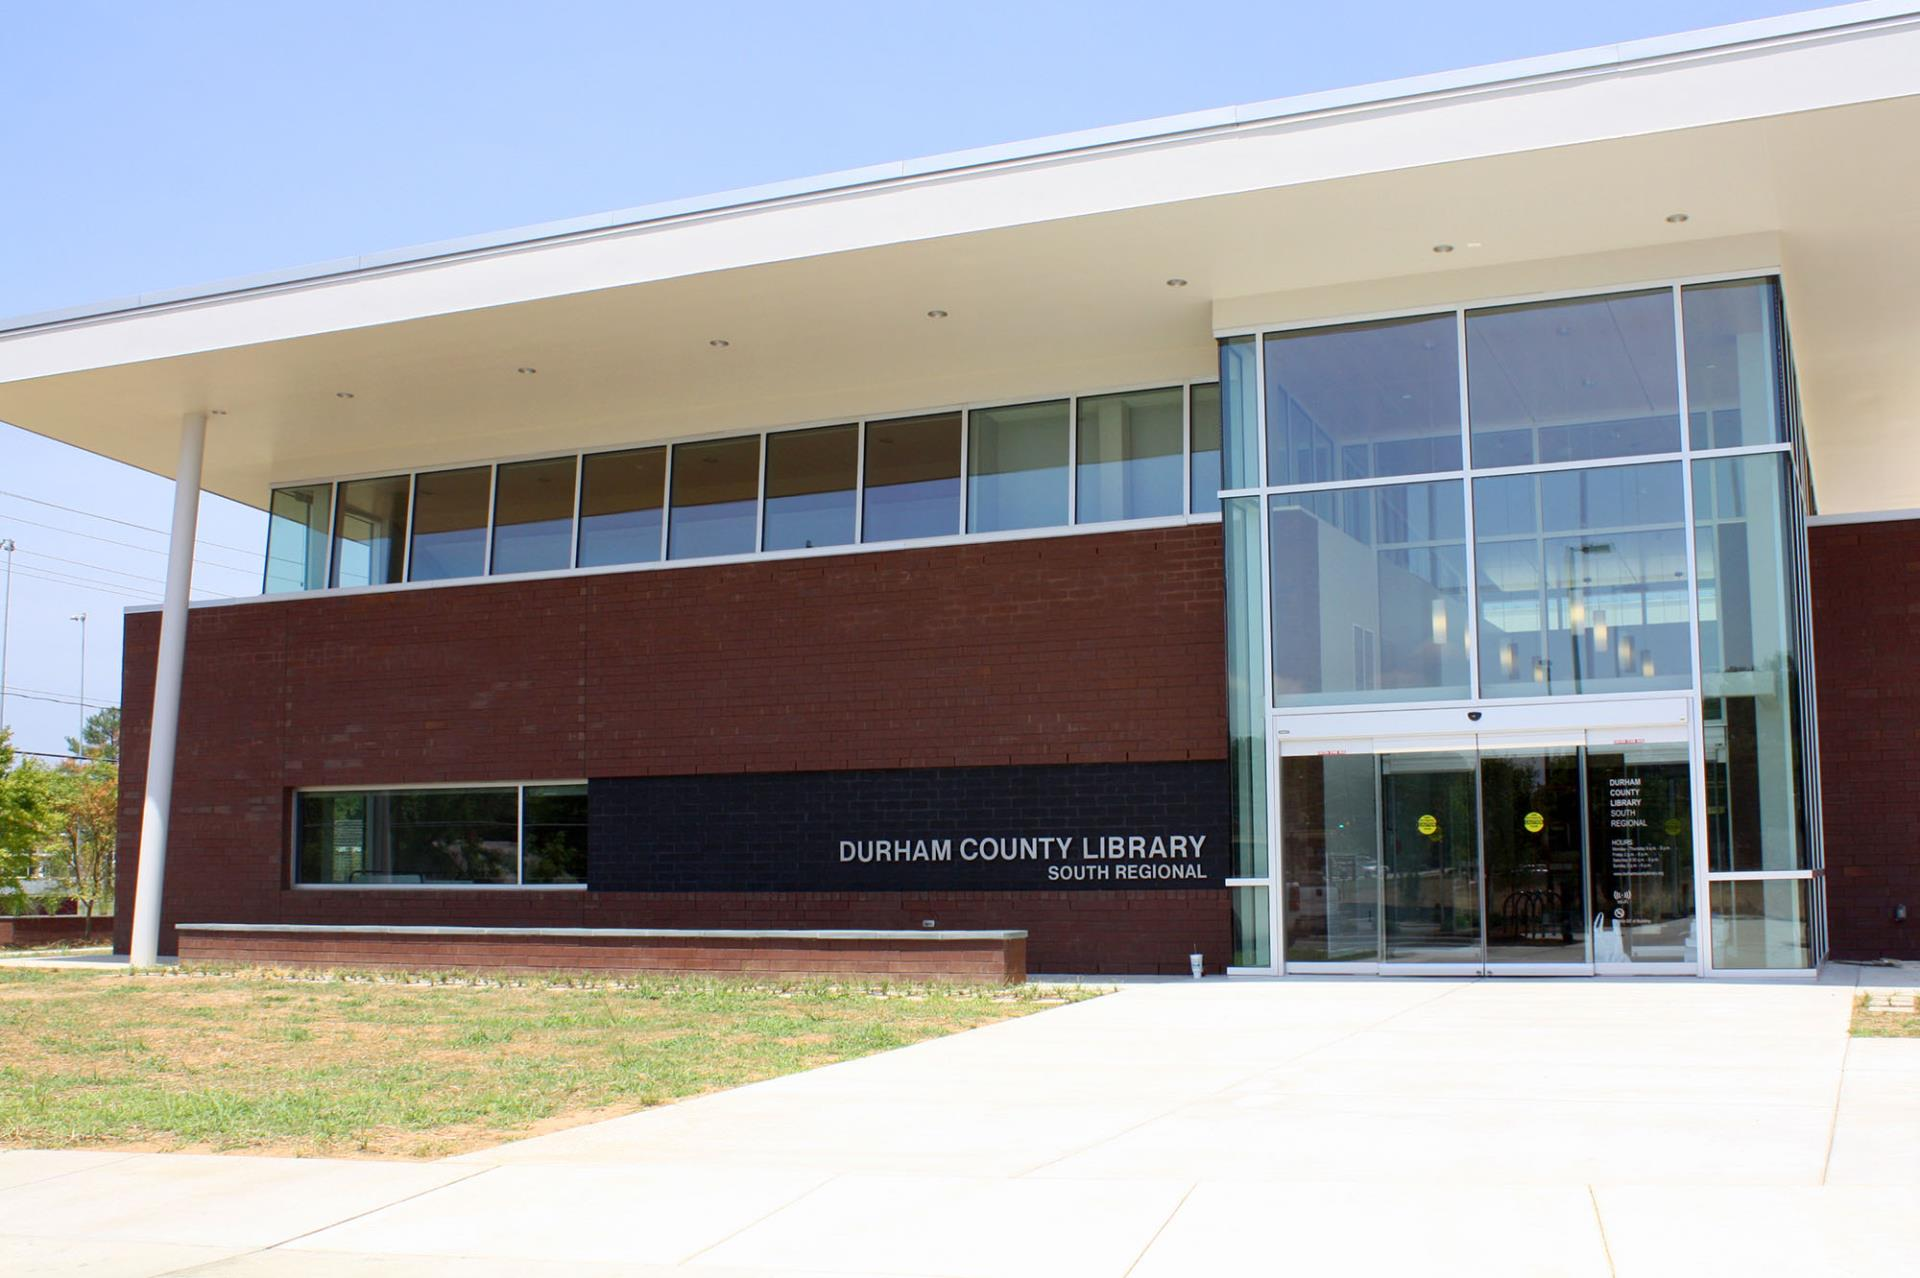 south regional library front of building